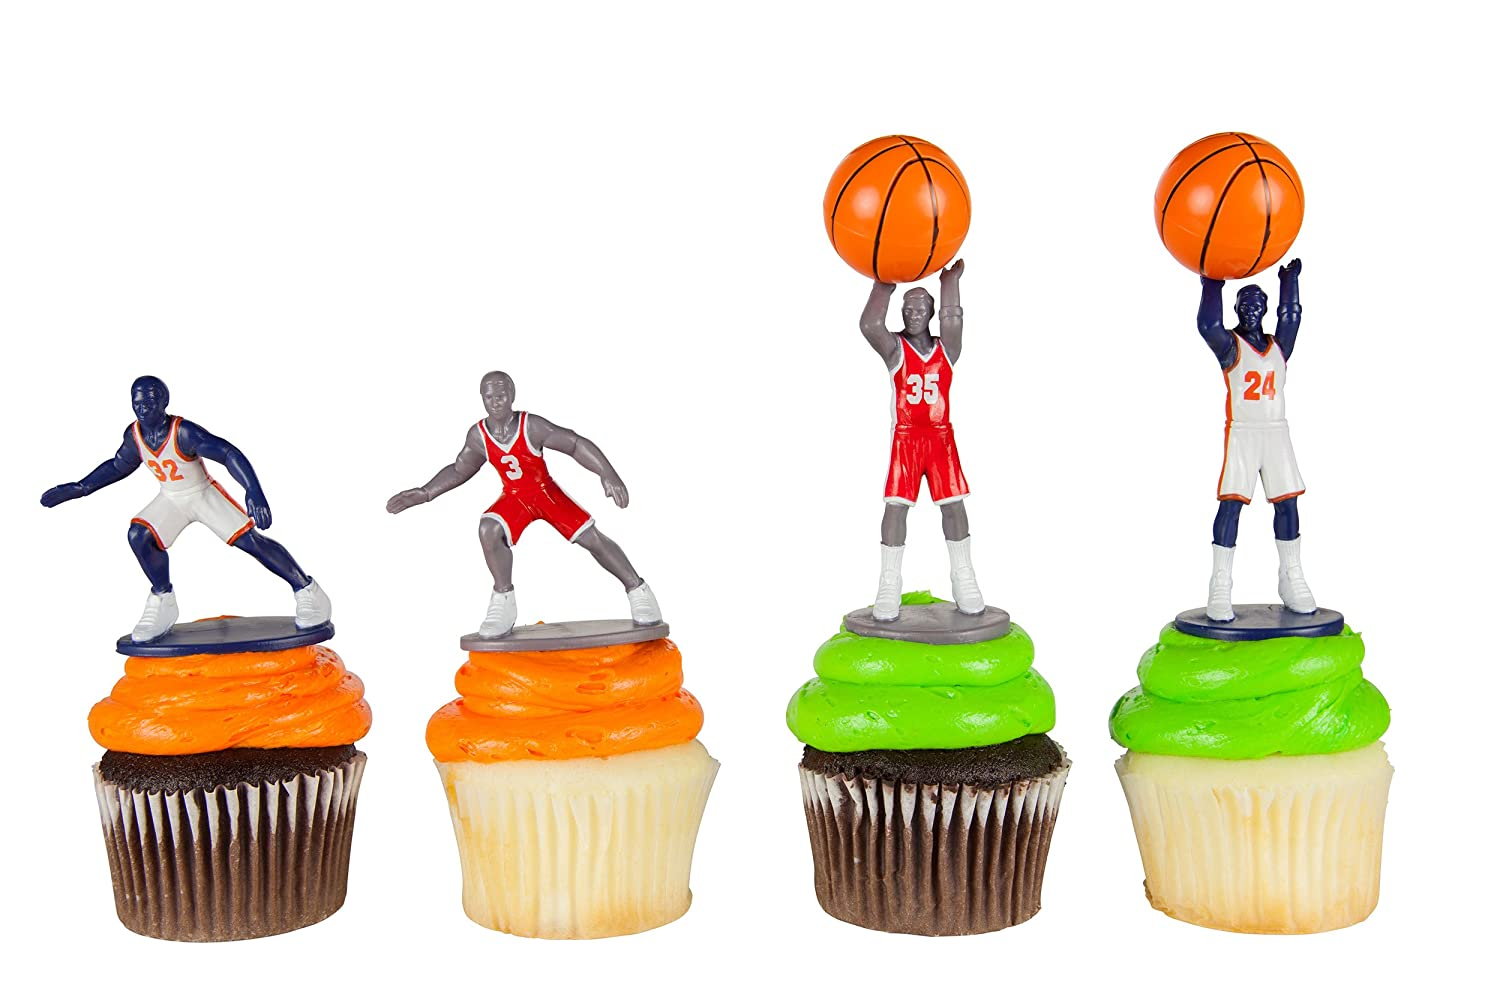 For Ages 3 and Up SG/_B00PWQ8P3G/_US Includes 2 Full Teams and More Kaskey Kids Basketball Guys Inspires Imagination with Open-Ended Play